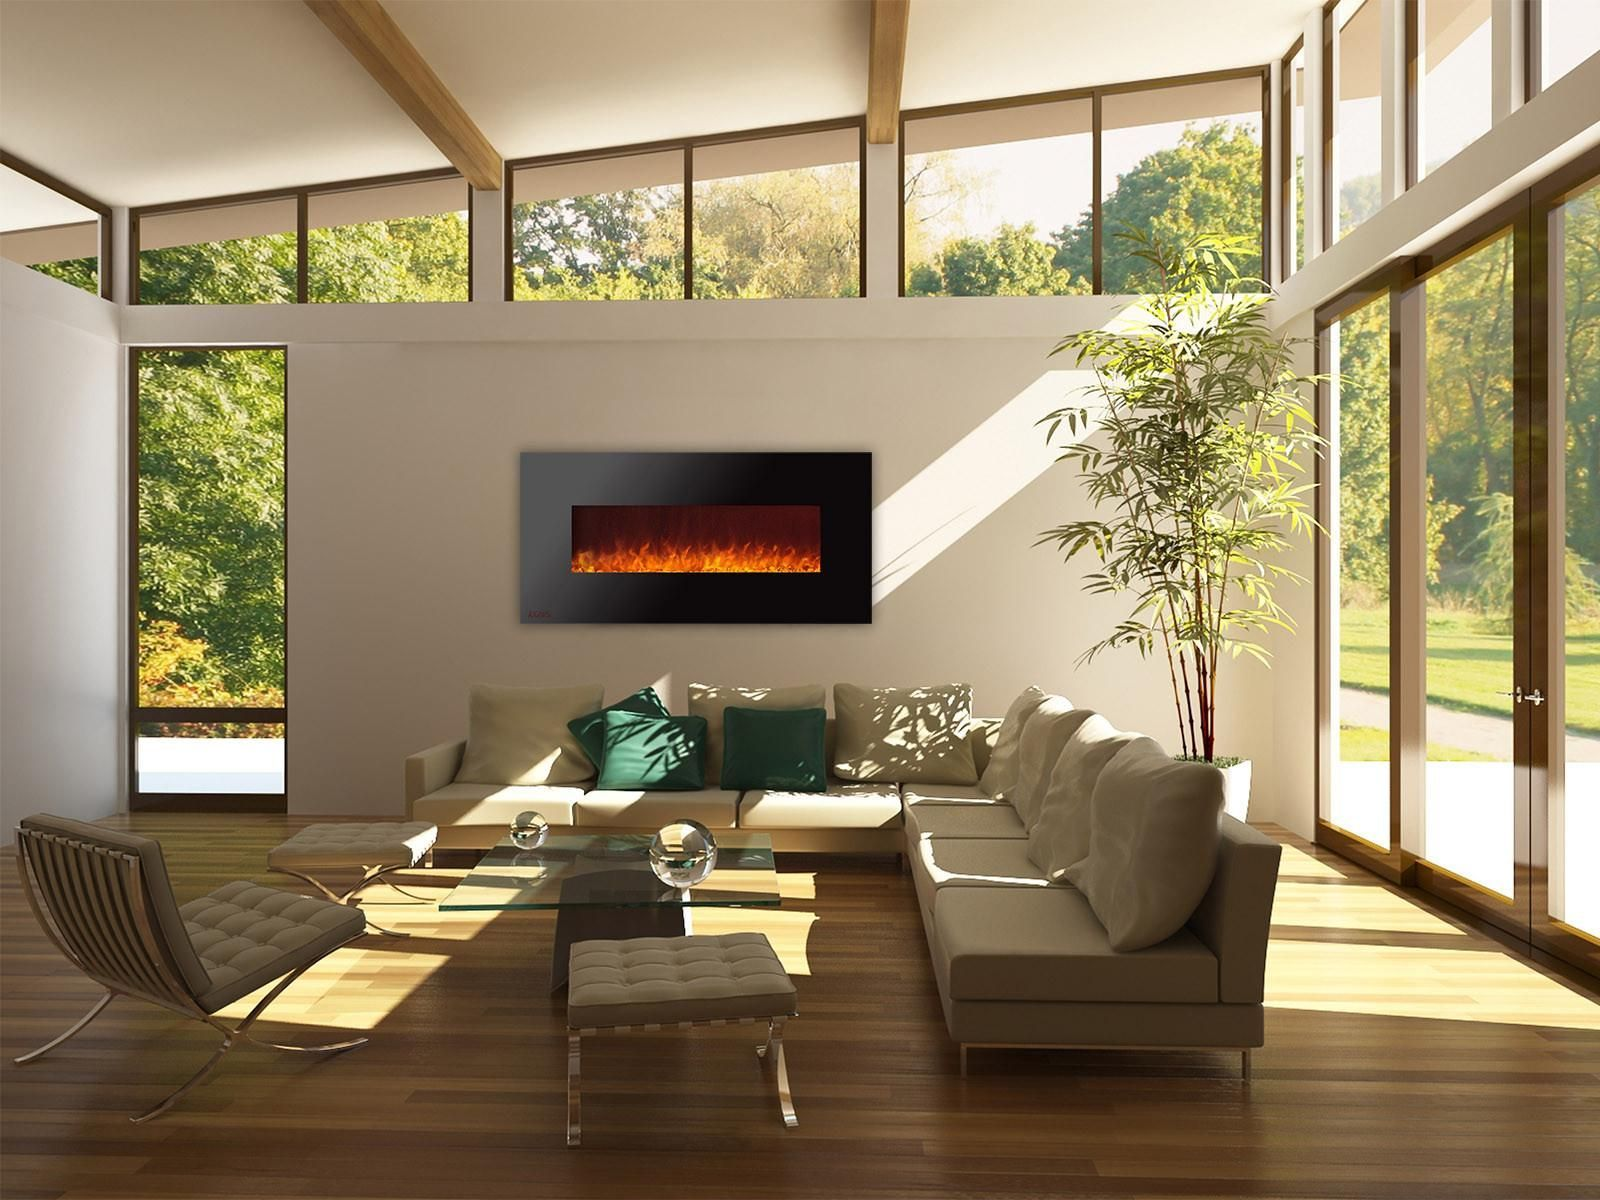 royal 60 inch electric fireplace with crystals home interior